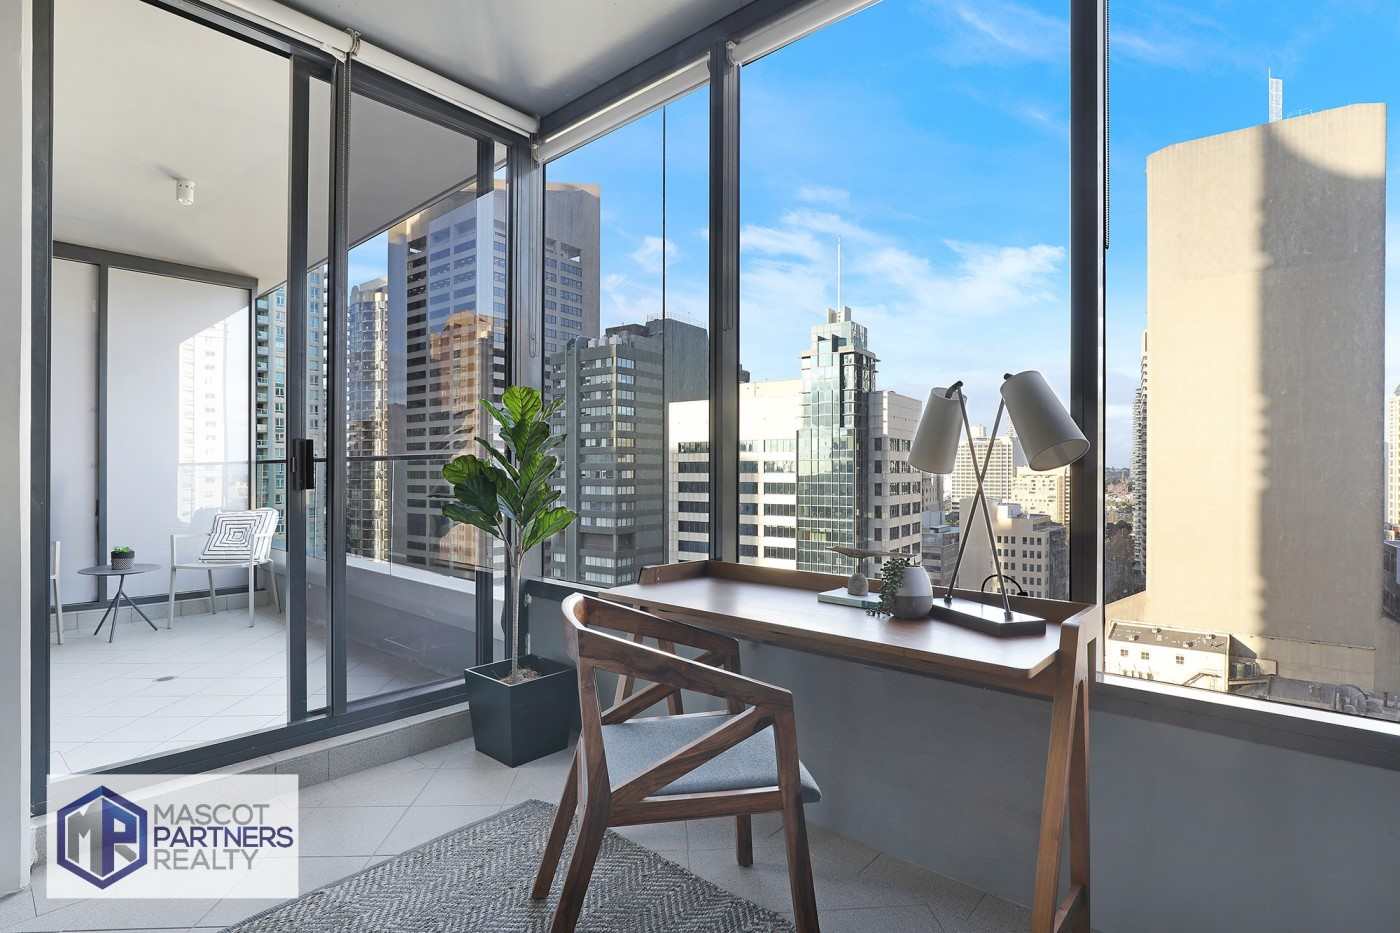 3013/91 LIVERPOOL ST, SYDNEY NSW 2000 (SOLD)